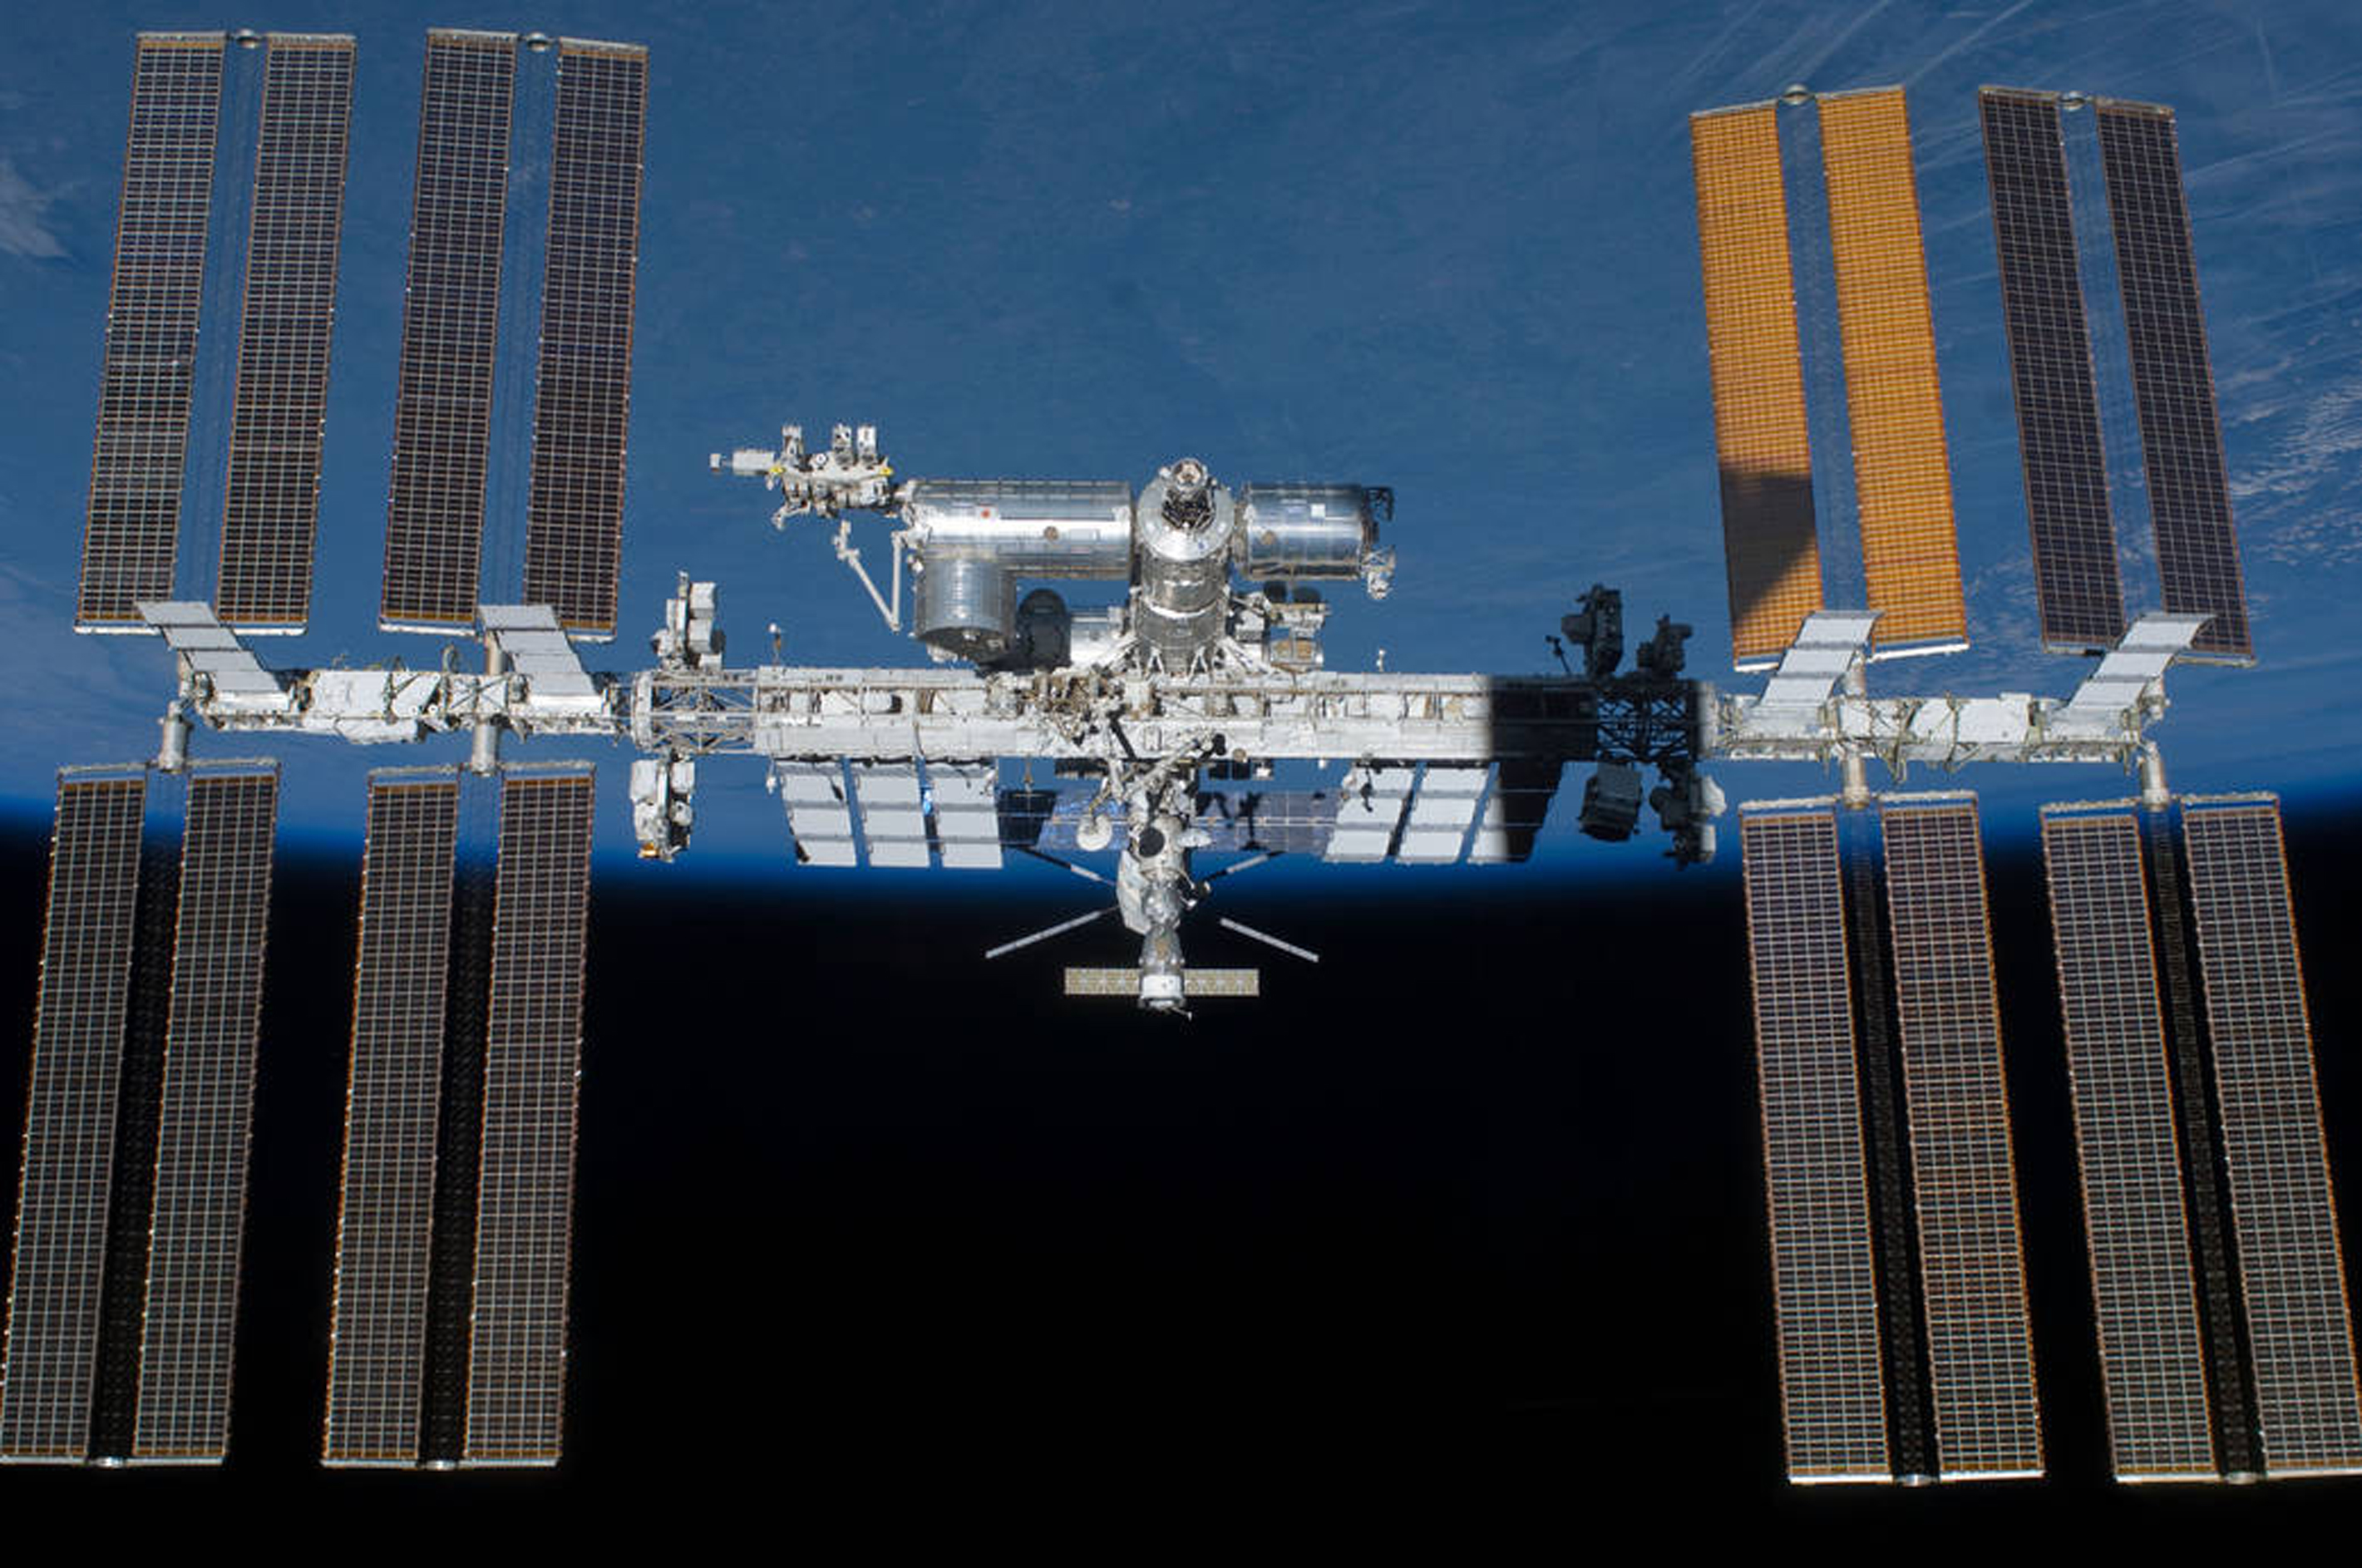 international space station from earth to current transportation - photo #18